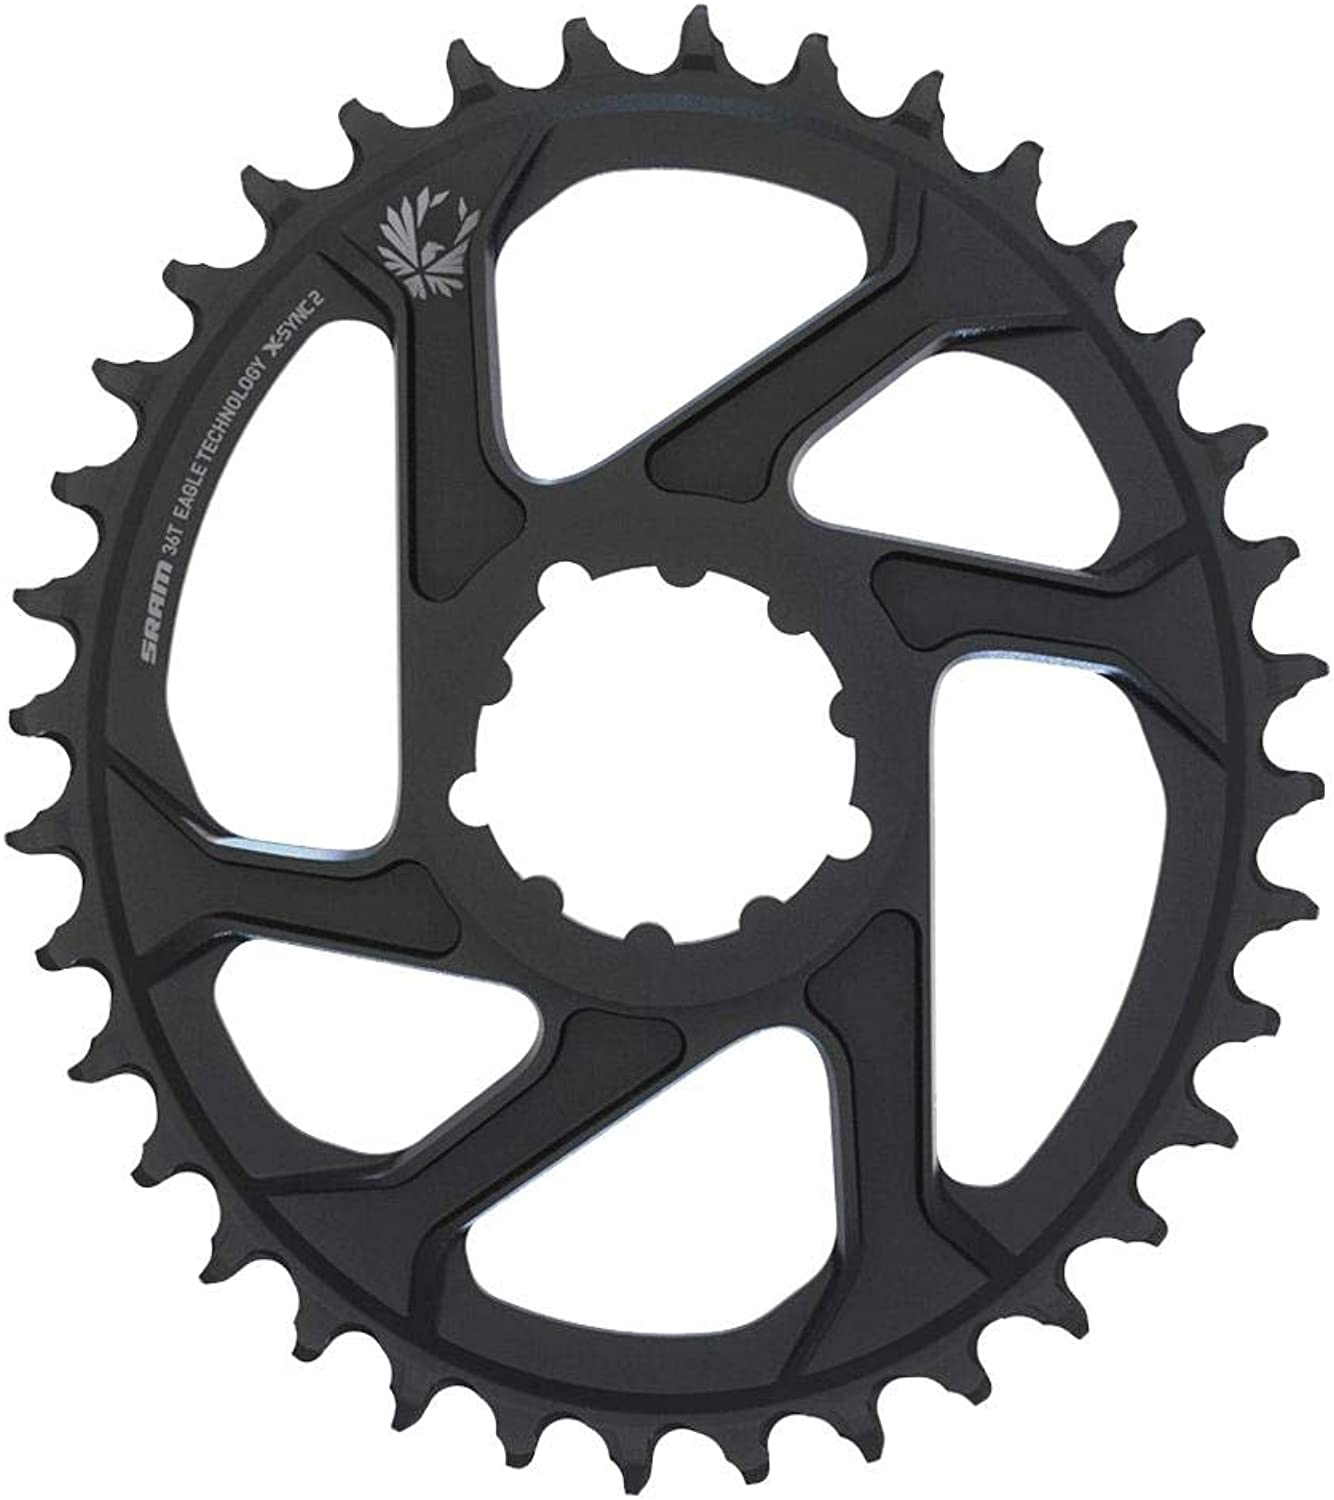 SRAM Eagle xSync 2 12S 36T Direct Mount Oval Chainring Black